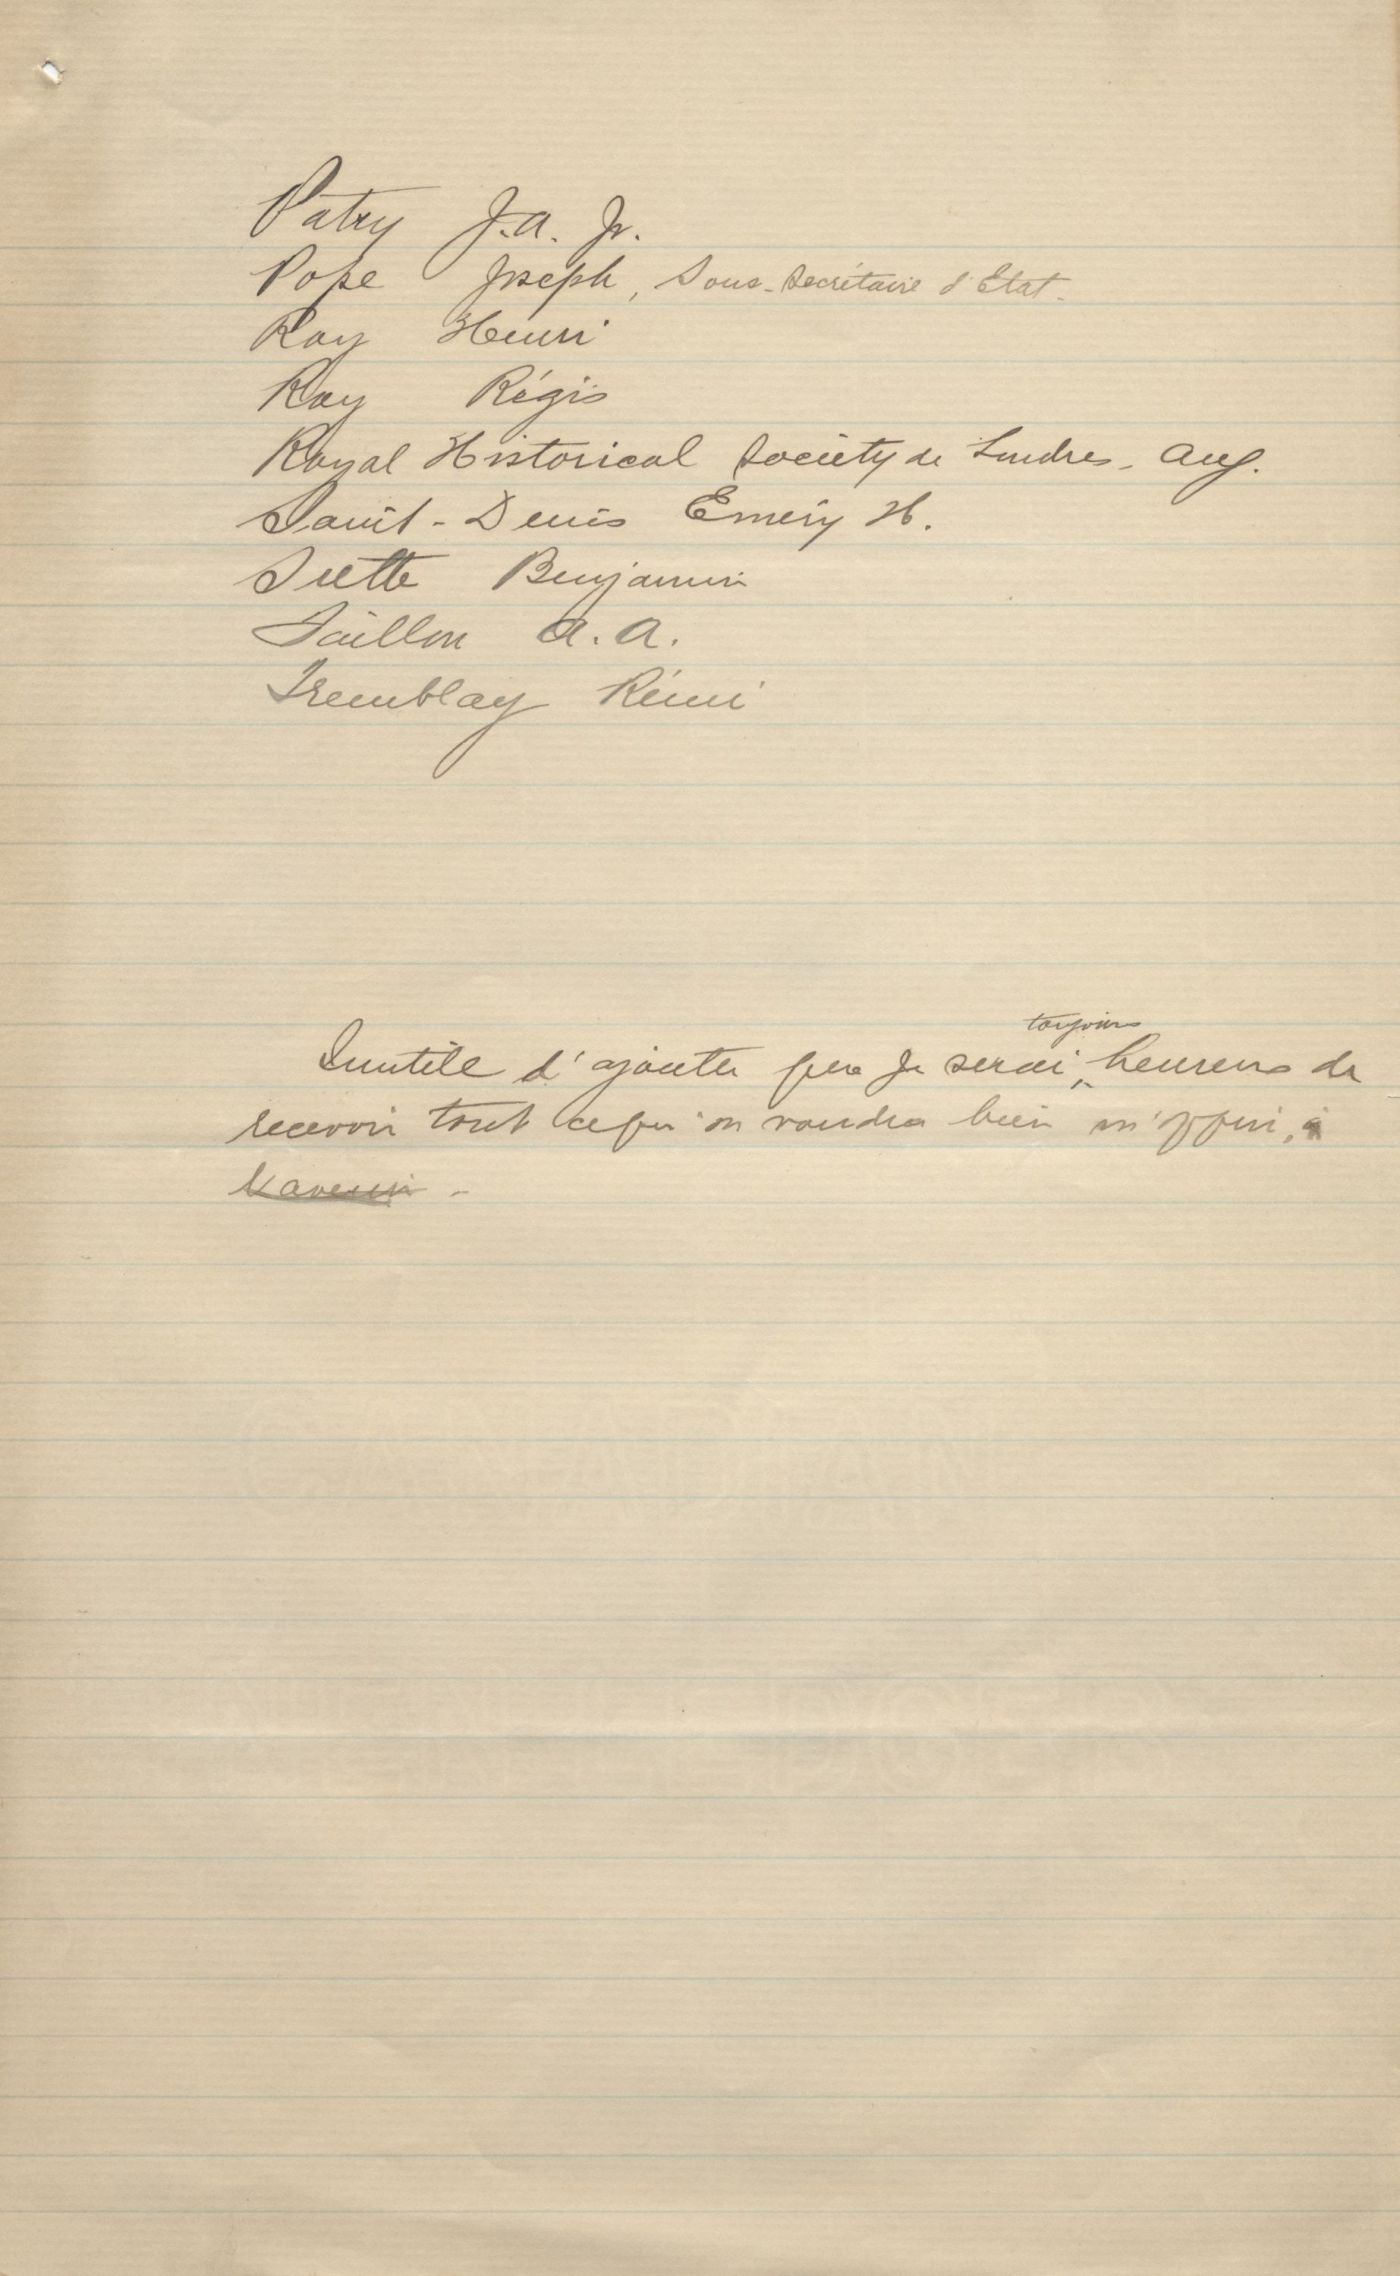 Report written by hand in French, with corrections and additions in pencil. It includes a list of donors and a list of newspapers and magazines that are part of the collection. It is signed by the librarian in Ottawa, in October 1897.